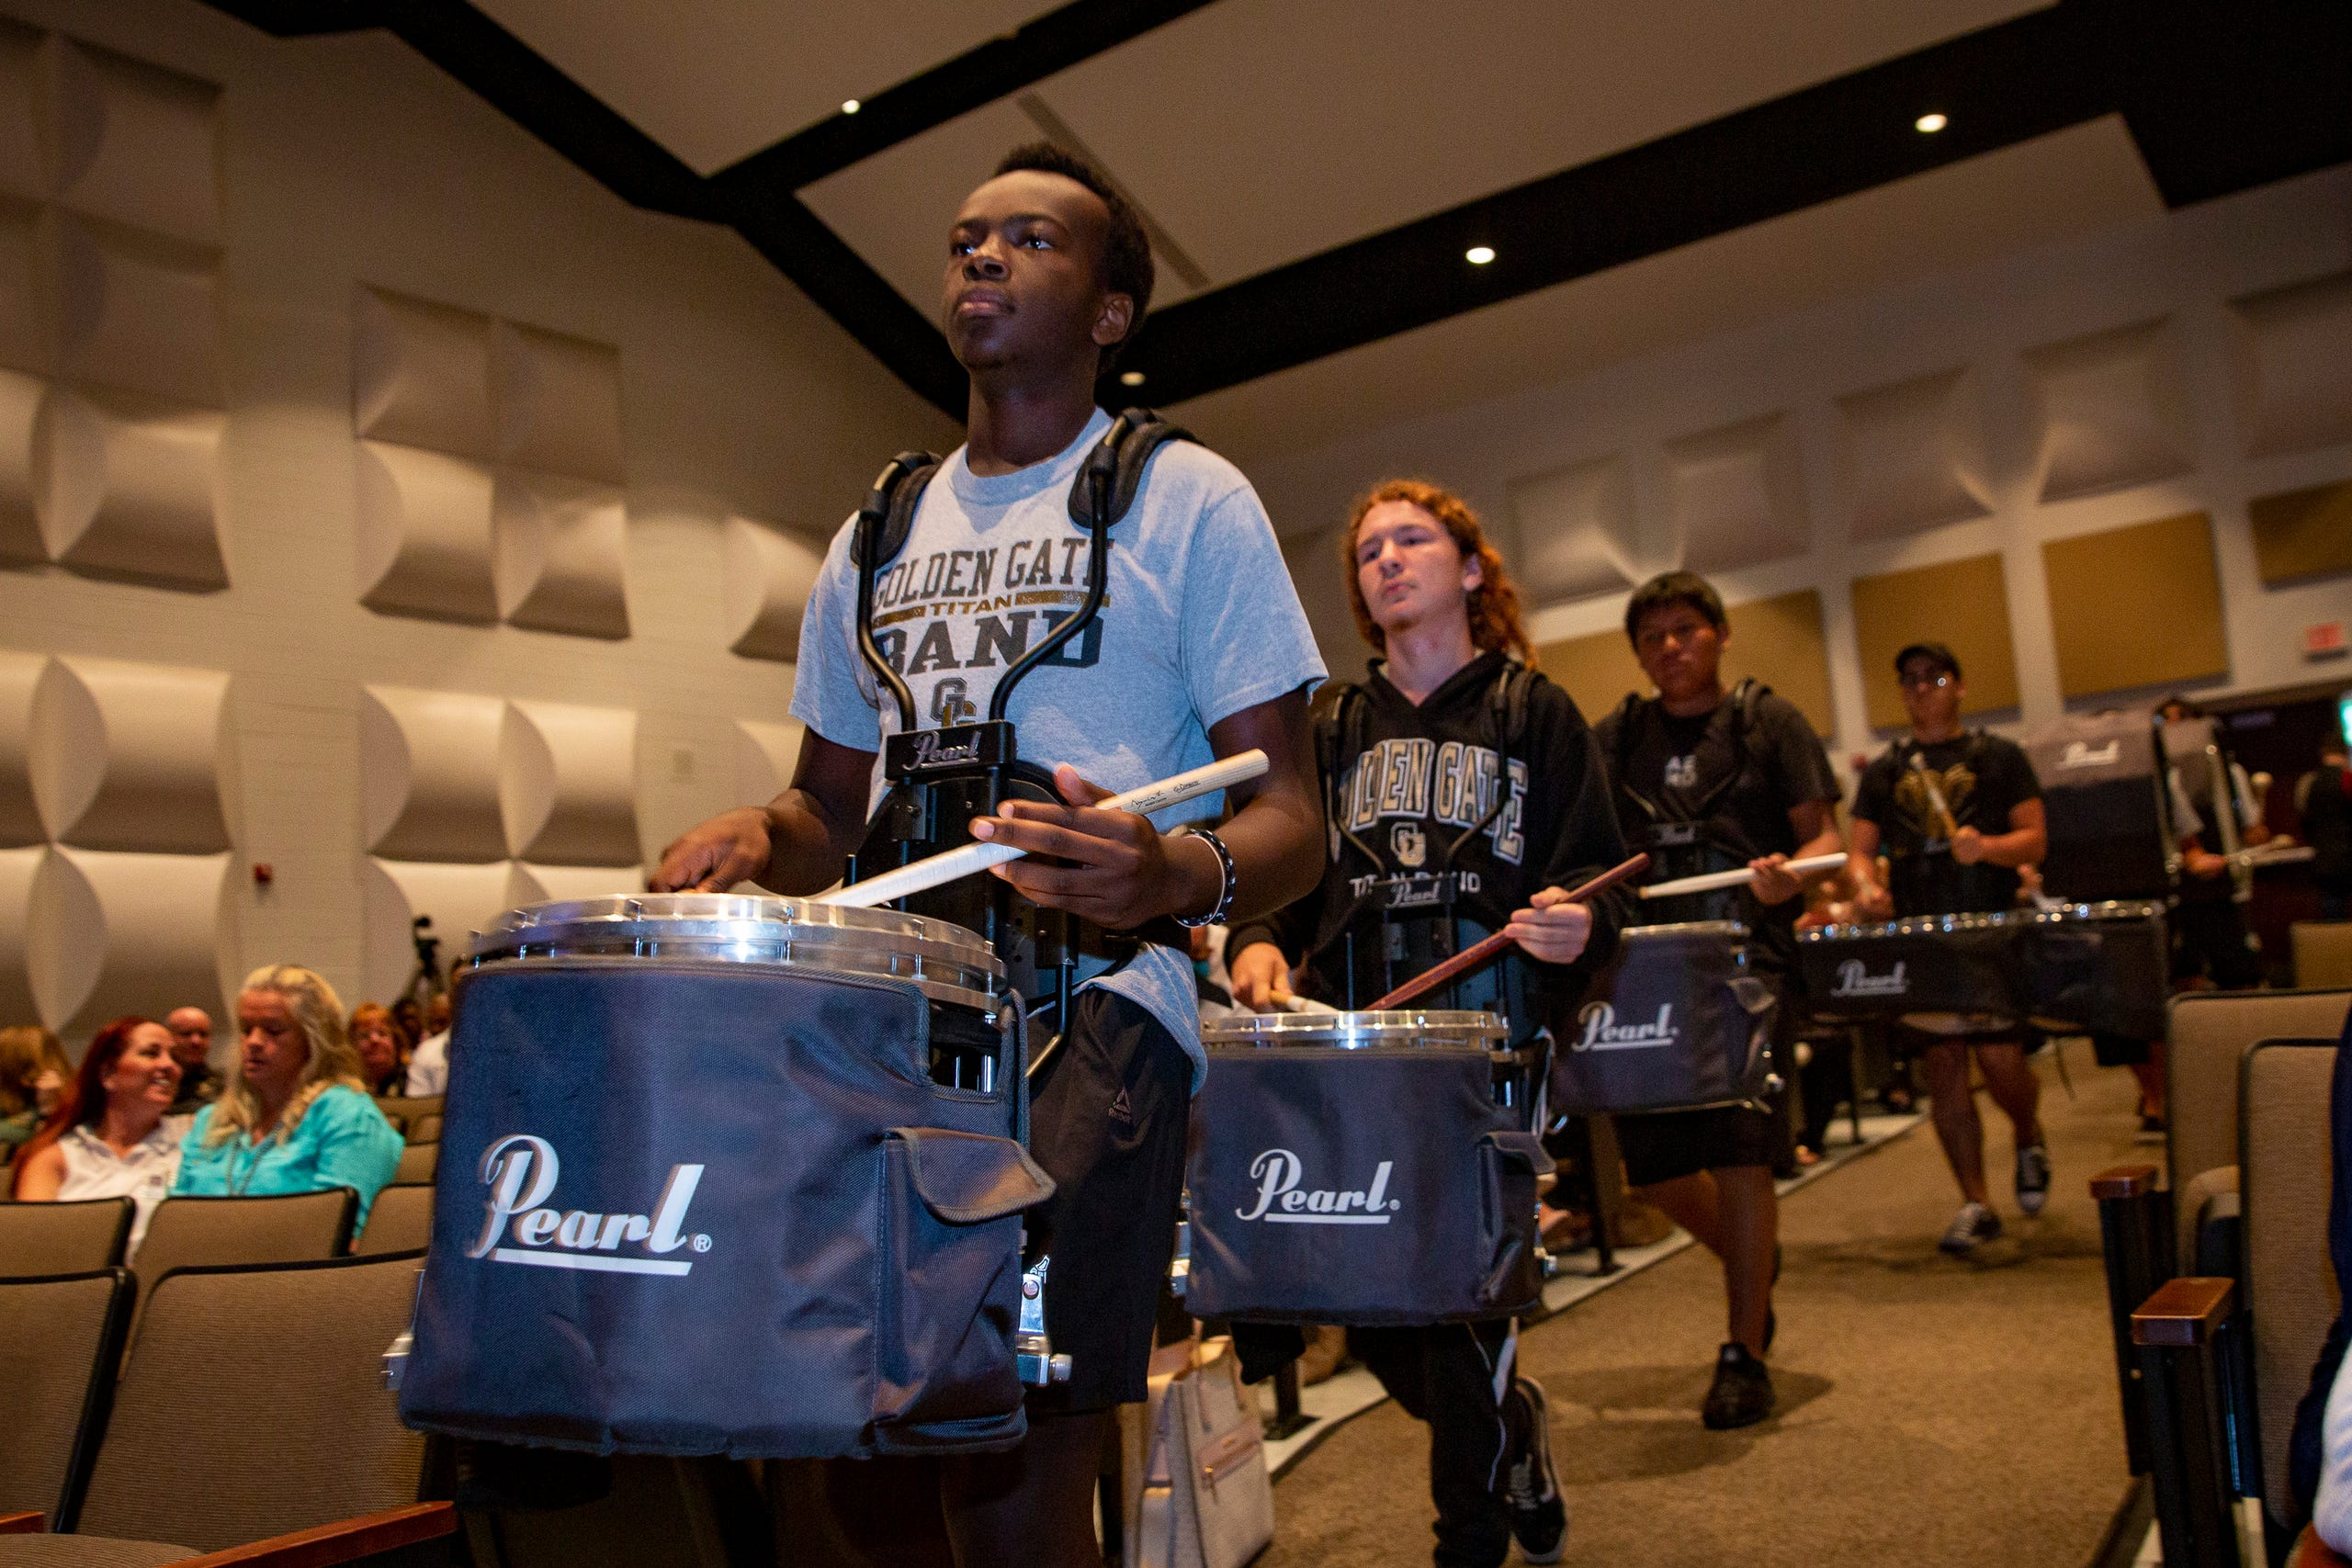 Members of the Golden Gate High School drum line perform during the 2021-22 Opening of Schools ceremony, Wednesday, Aug. 4, 2021, at Golden Gate High School.